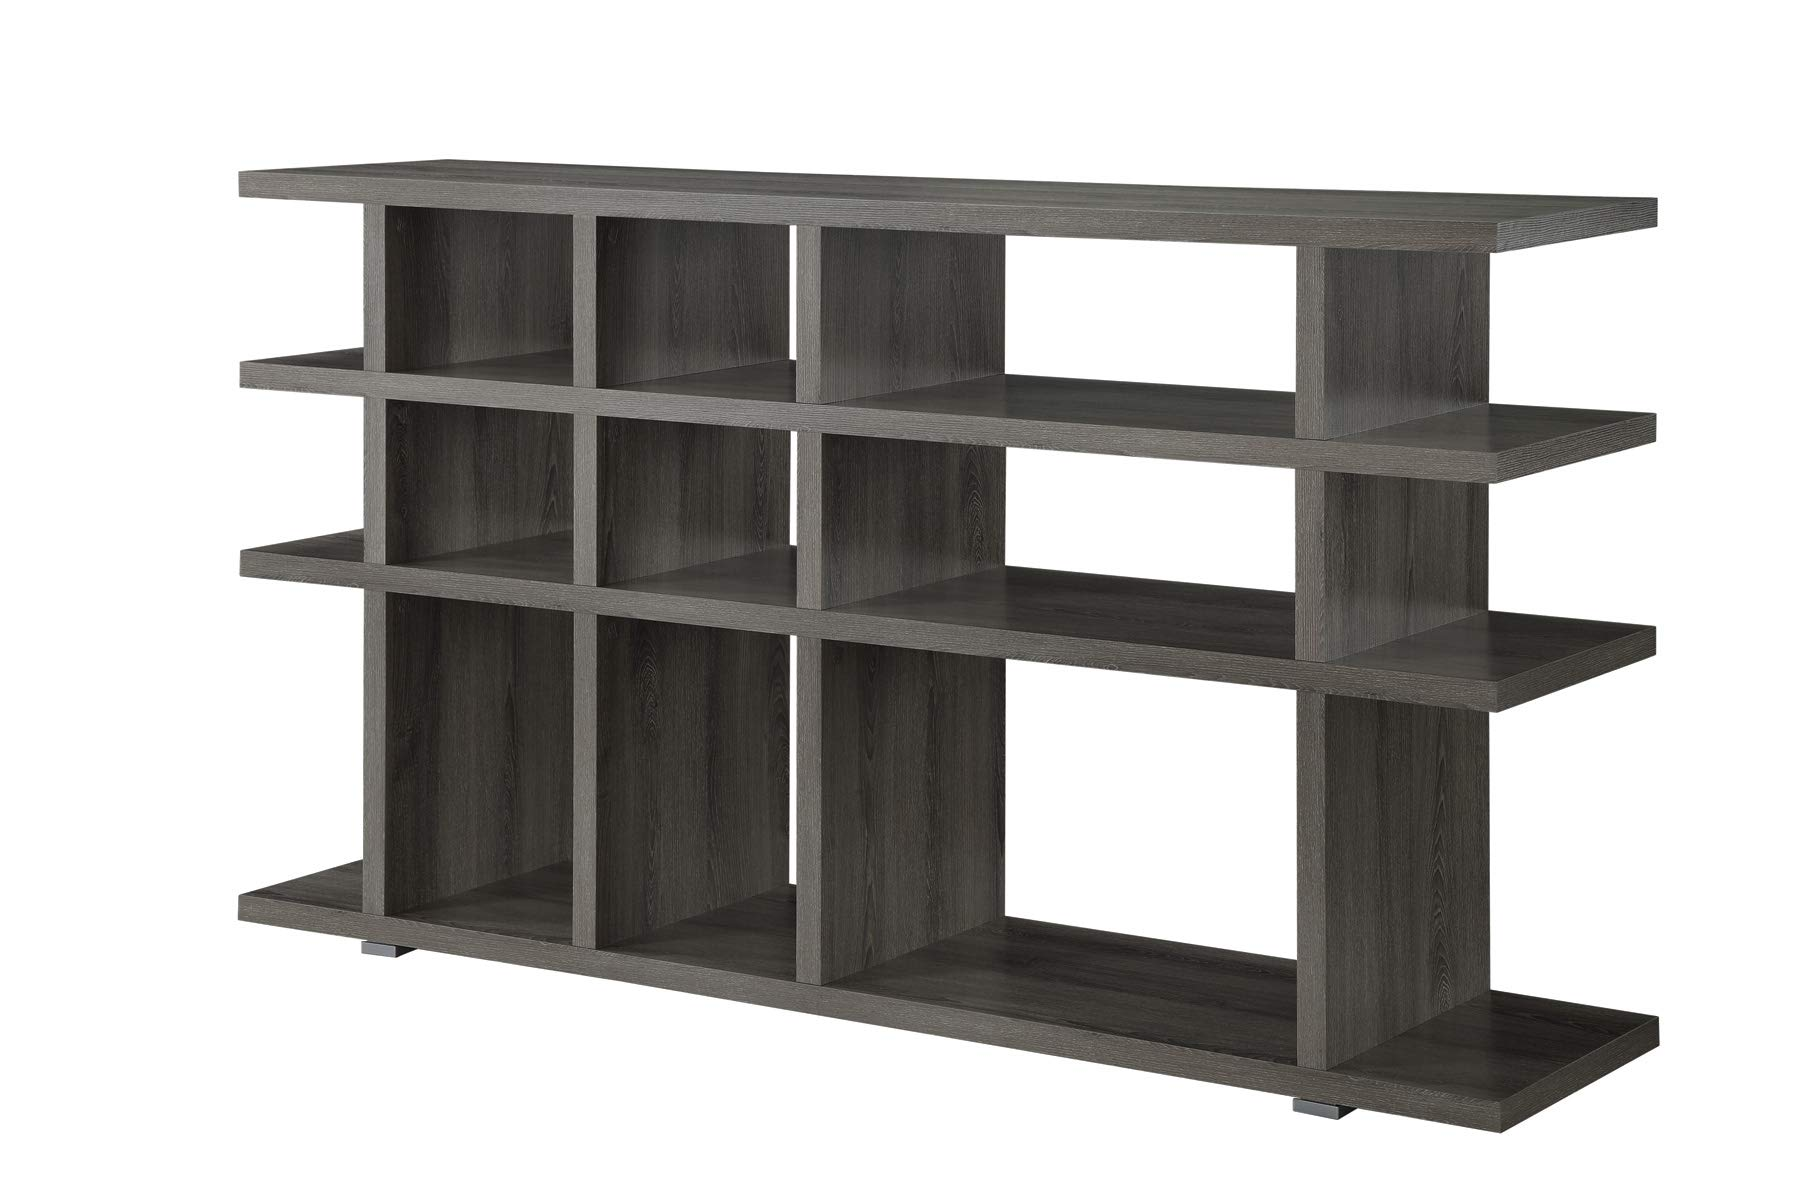 Coaster Home Furnishings 3-Tier Bookcase Weathered Grey by Coaster Home Furnishings